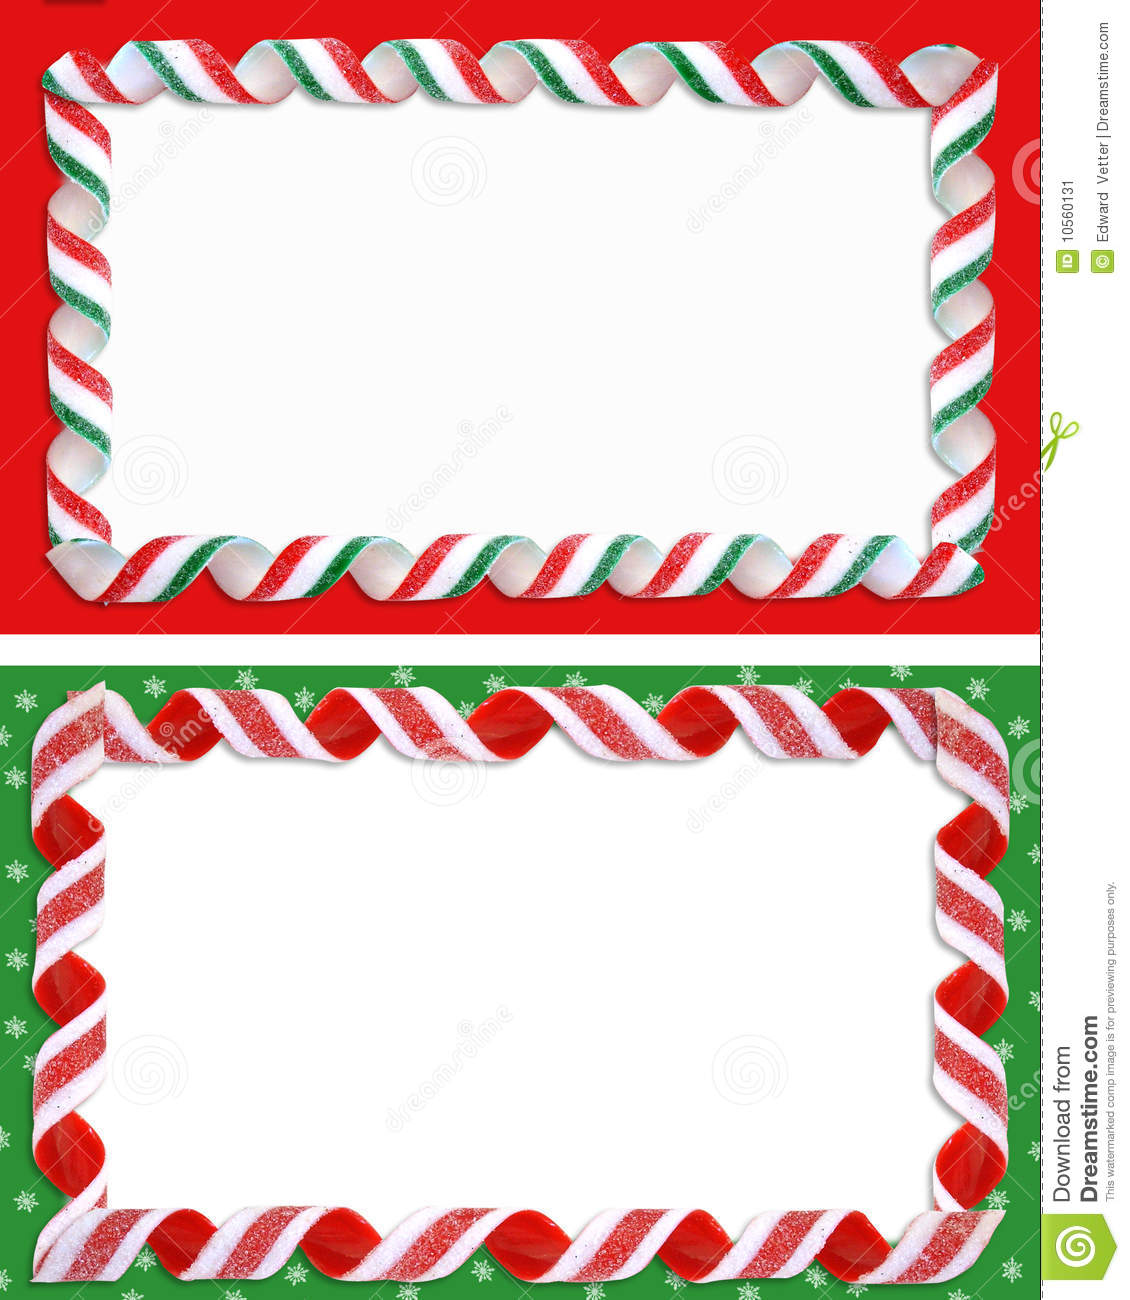 It's just a picture of Free Printable Christmas Borders pertaining to simple